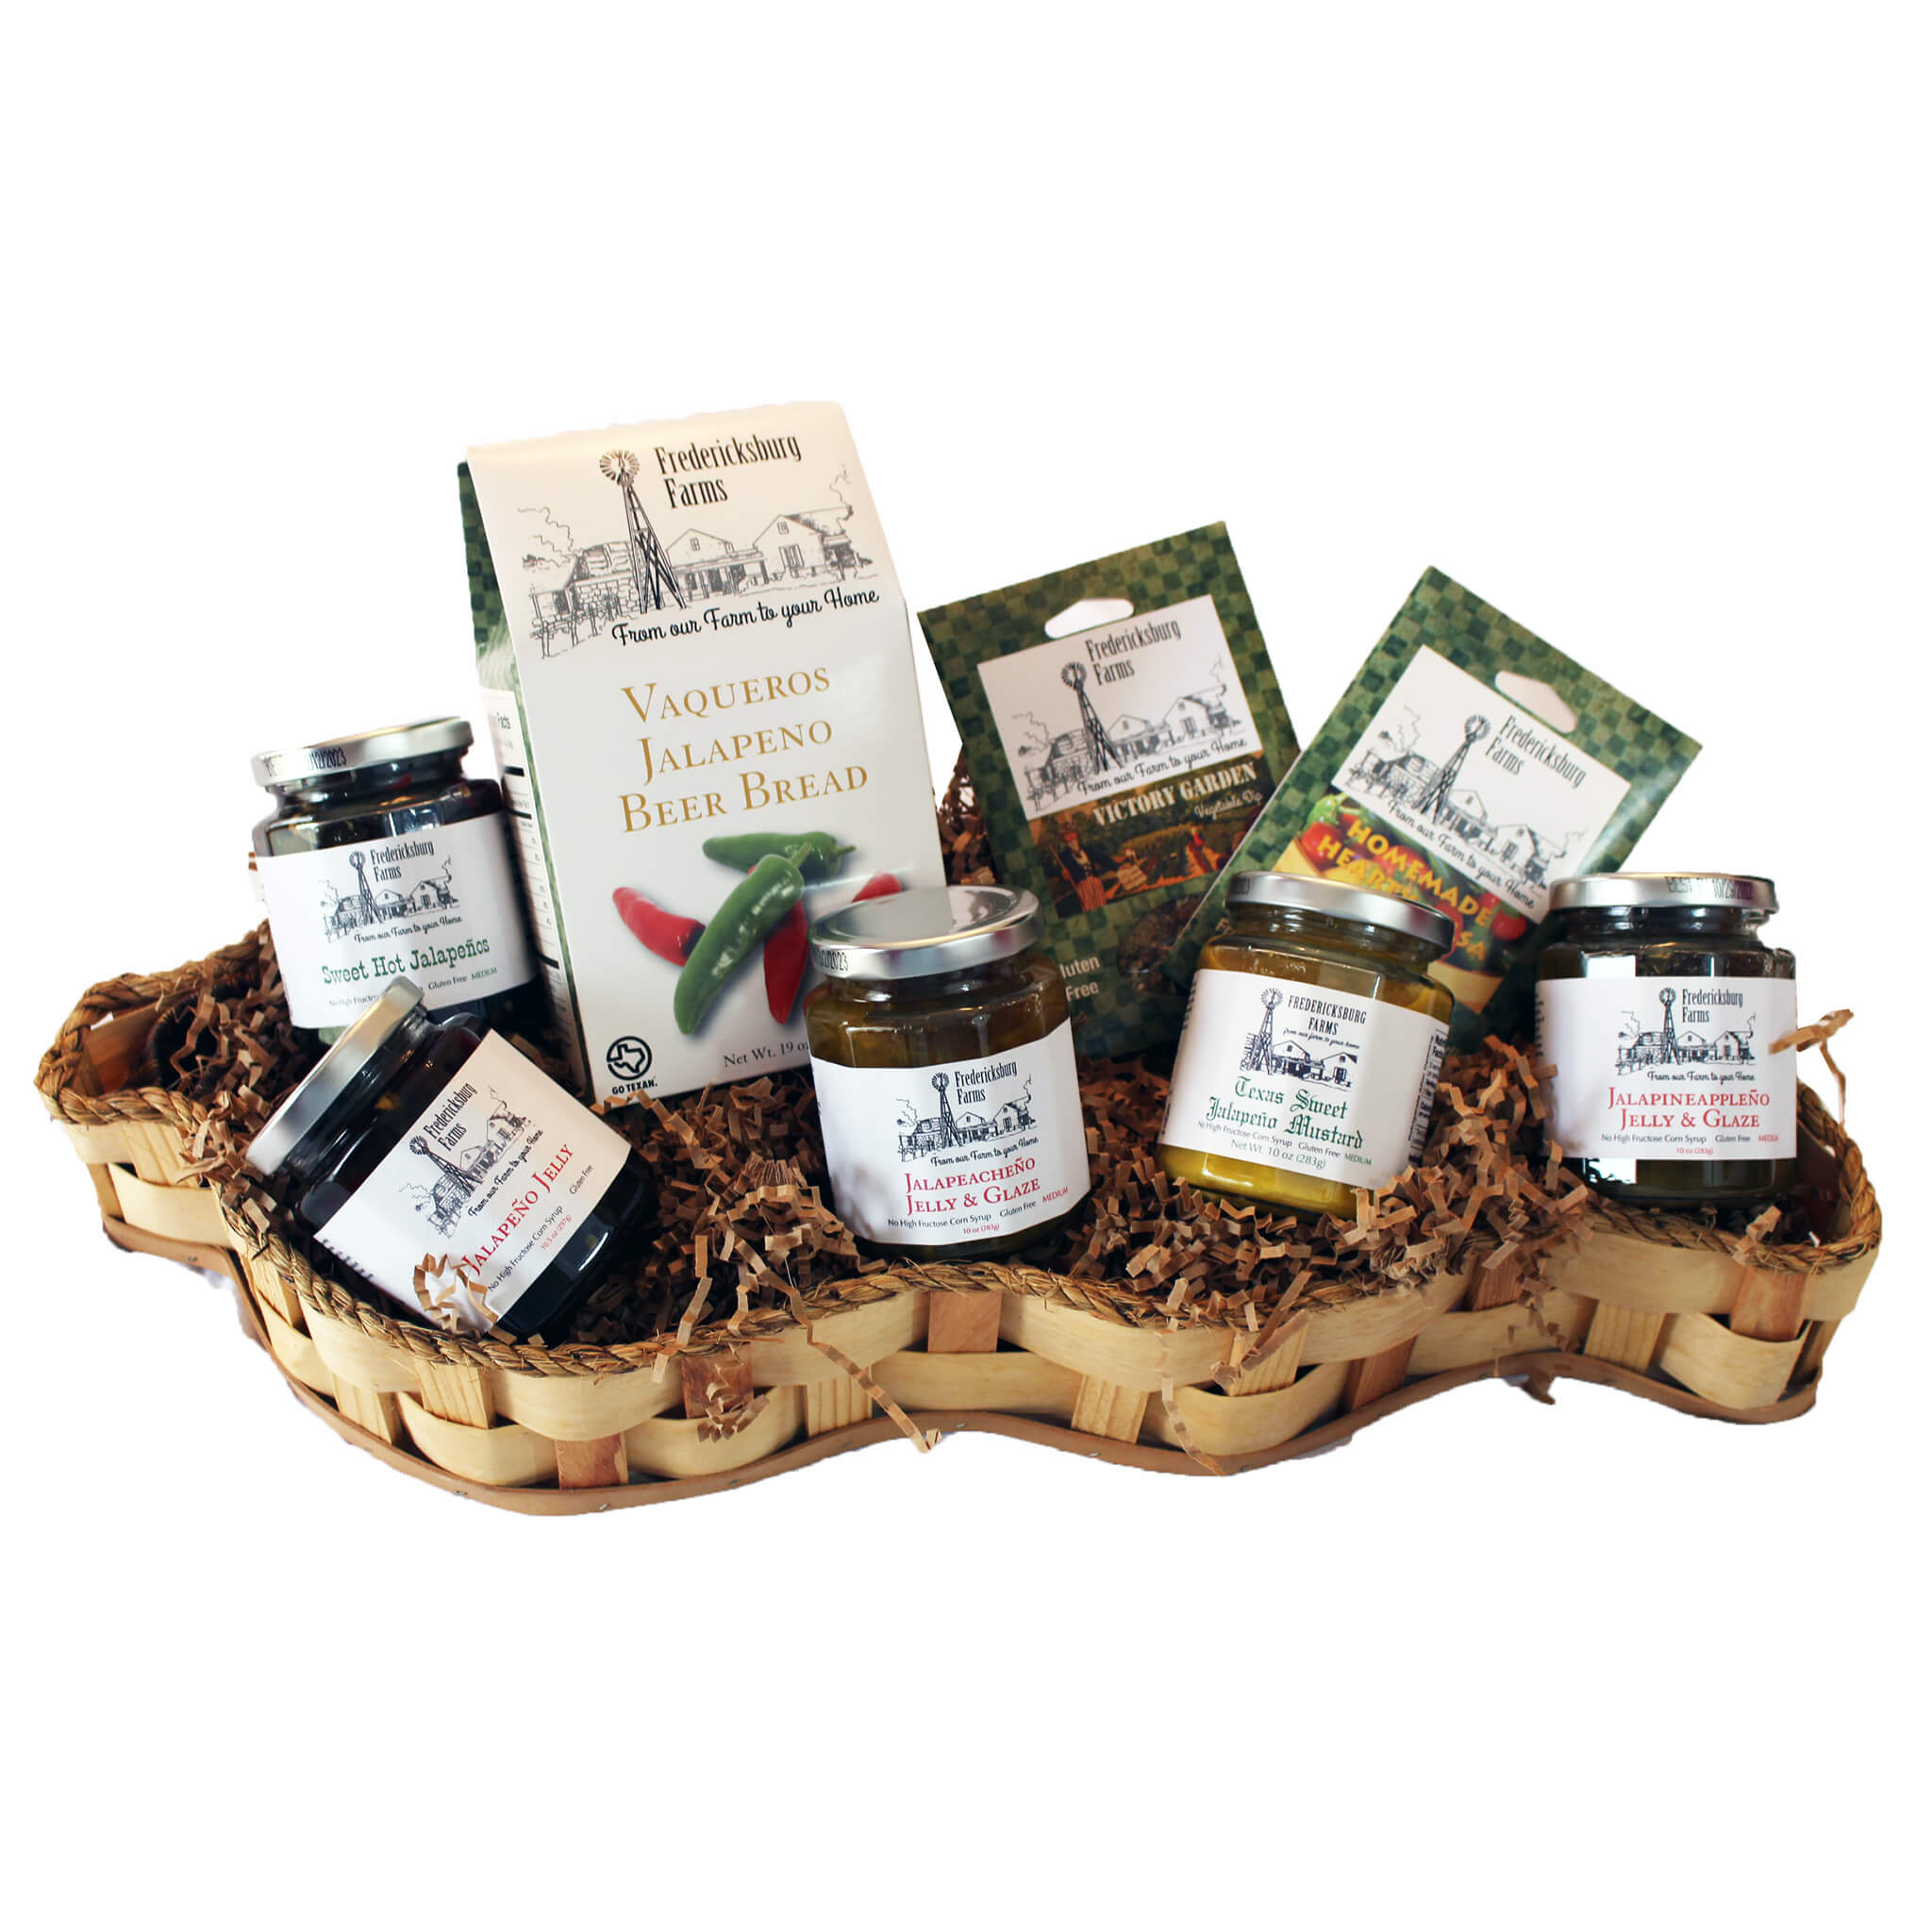 Jalapeno Lovers Basket - Fredericksburg Farms